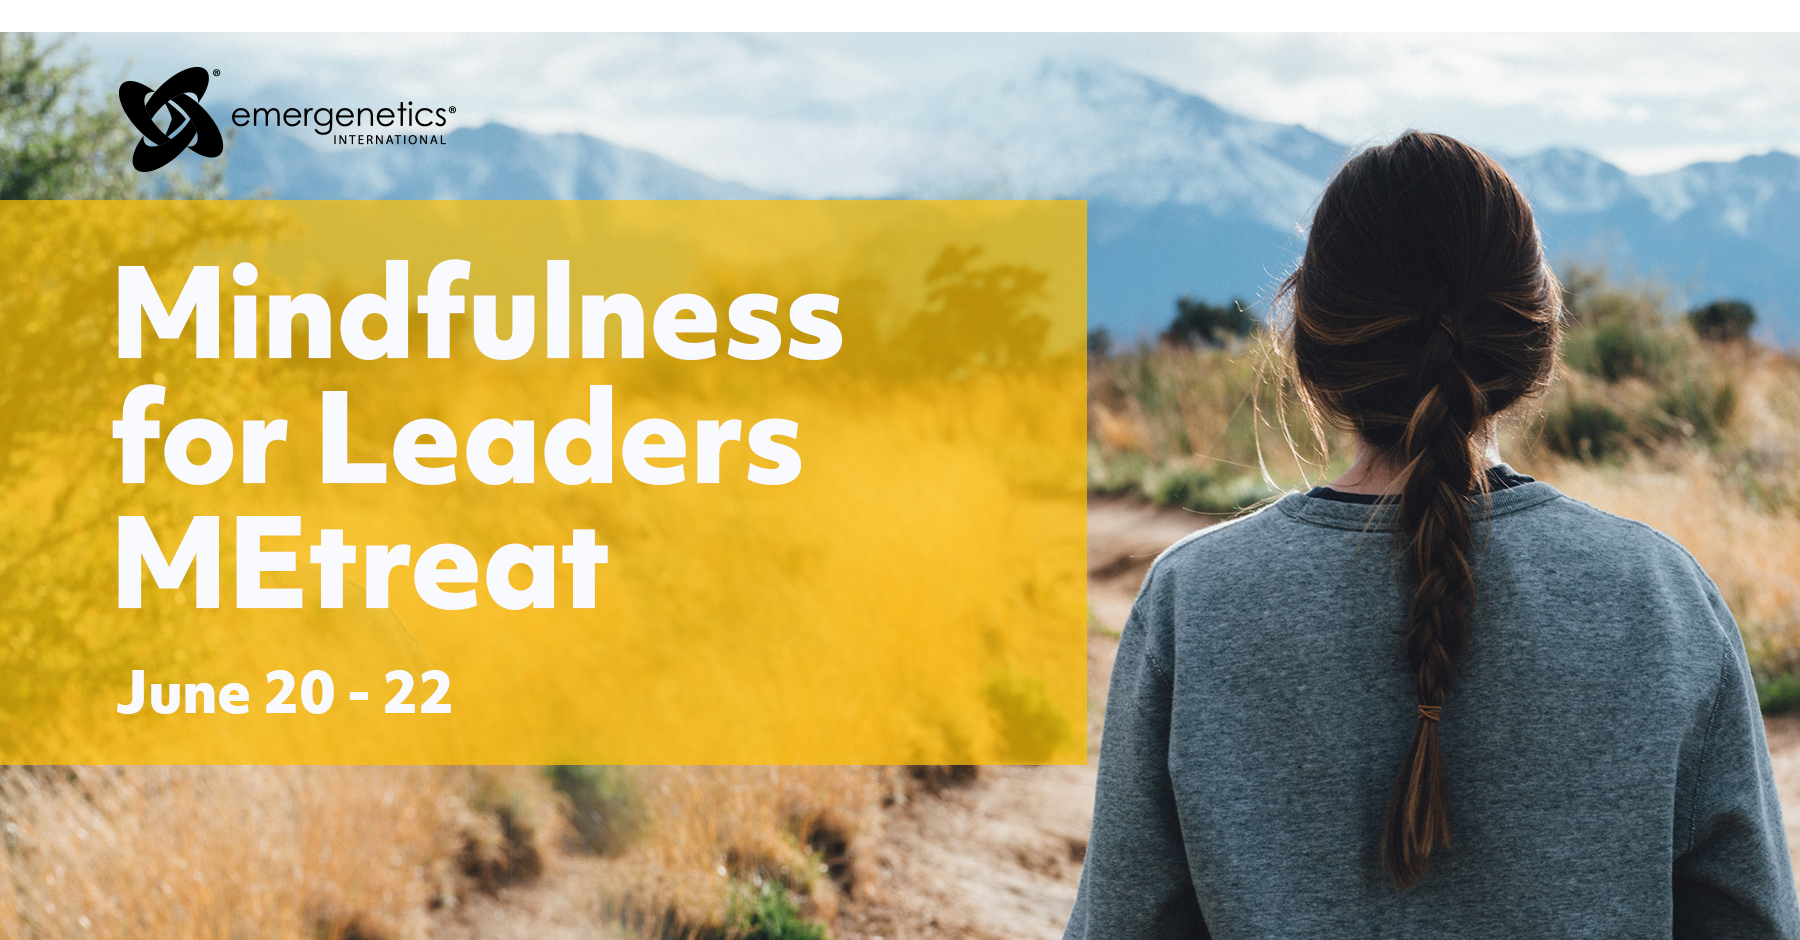 Mindfulness for Leaders MEtreat - June 20 - 22